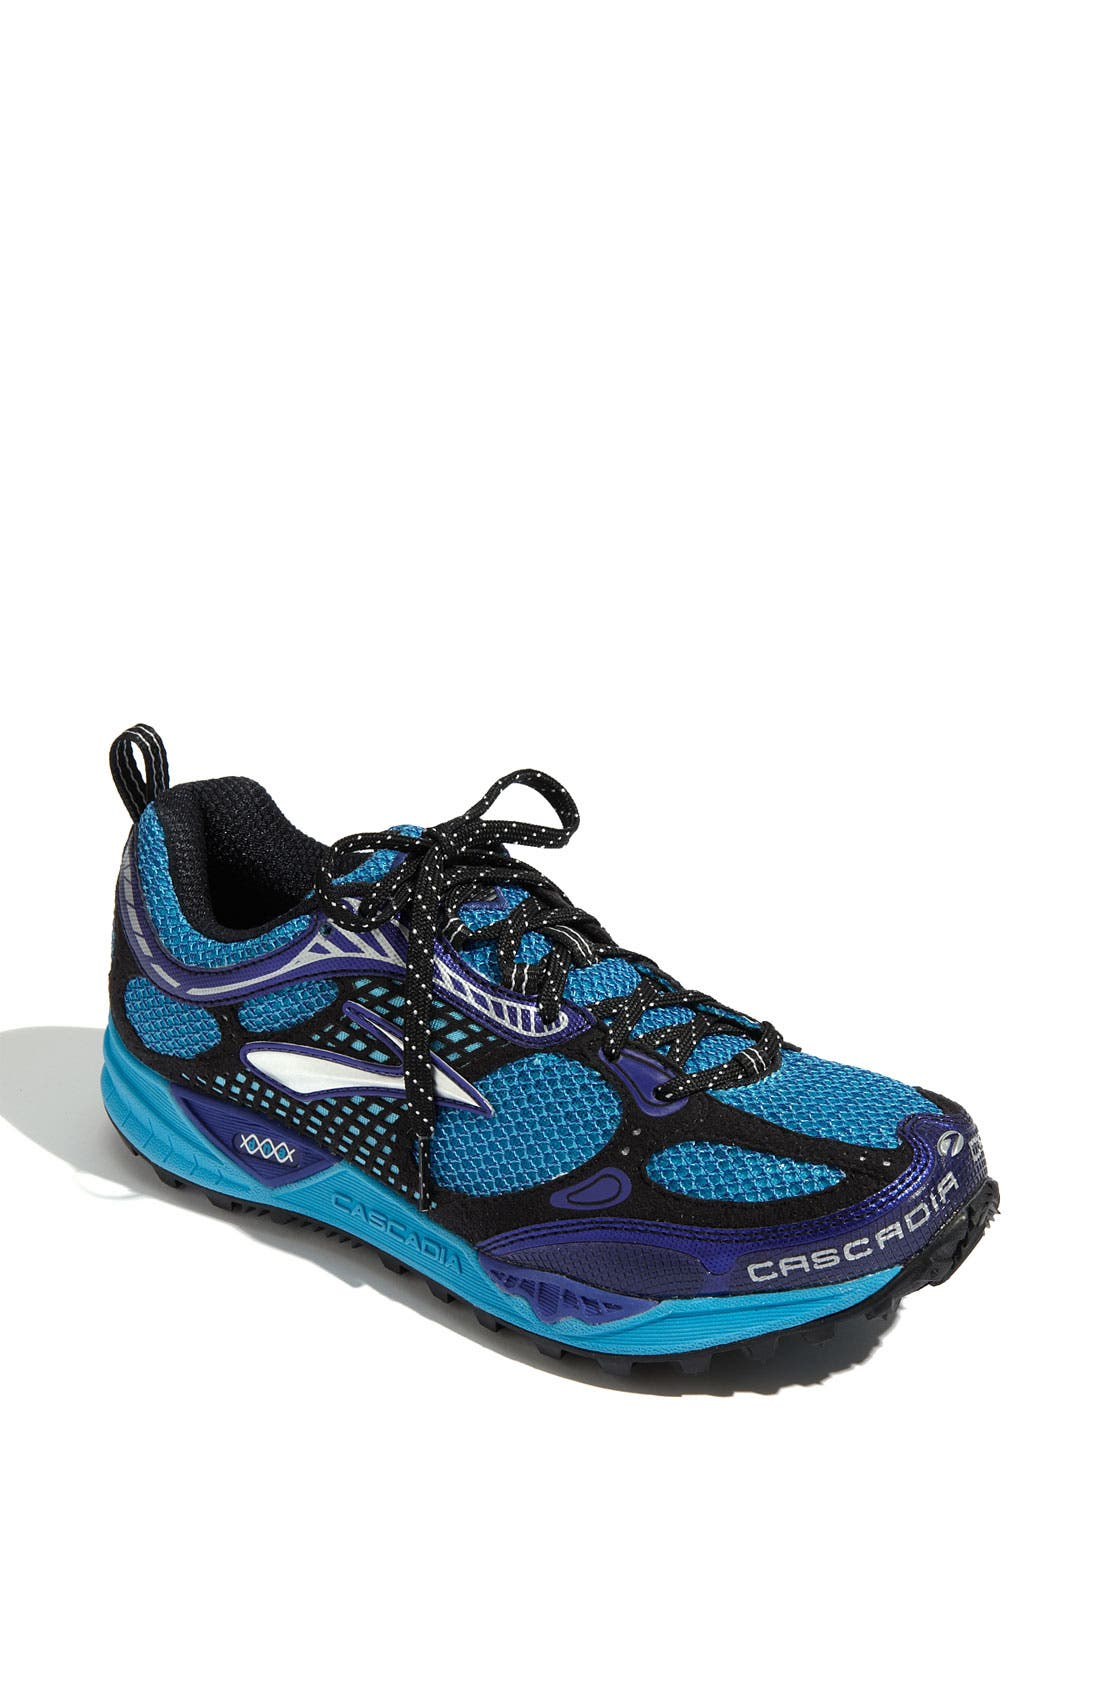 Main Image - Brooks 'Cascadia 6' Trail Running Shoe (Women)